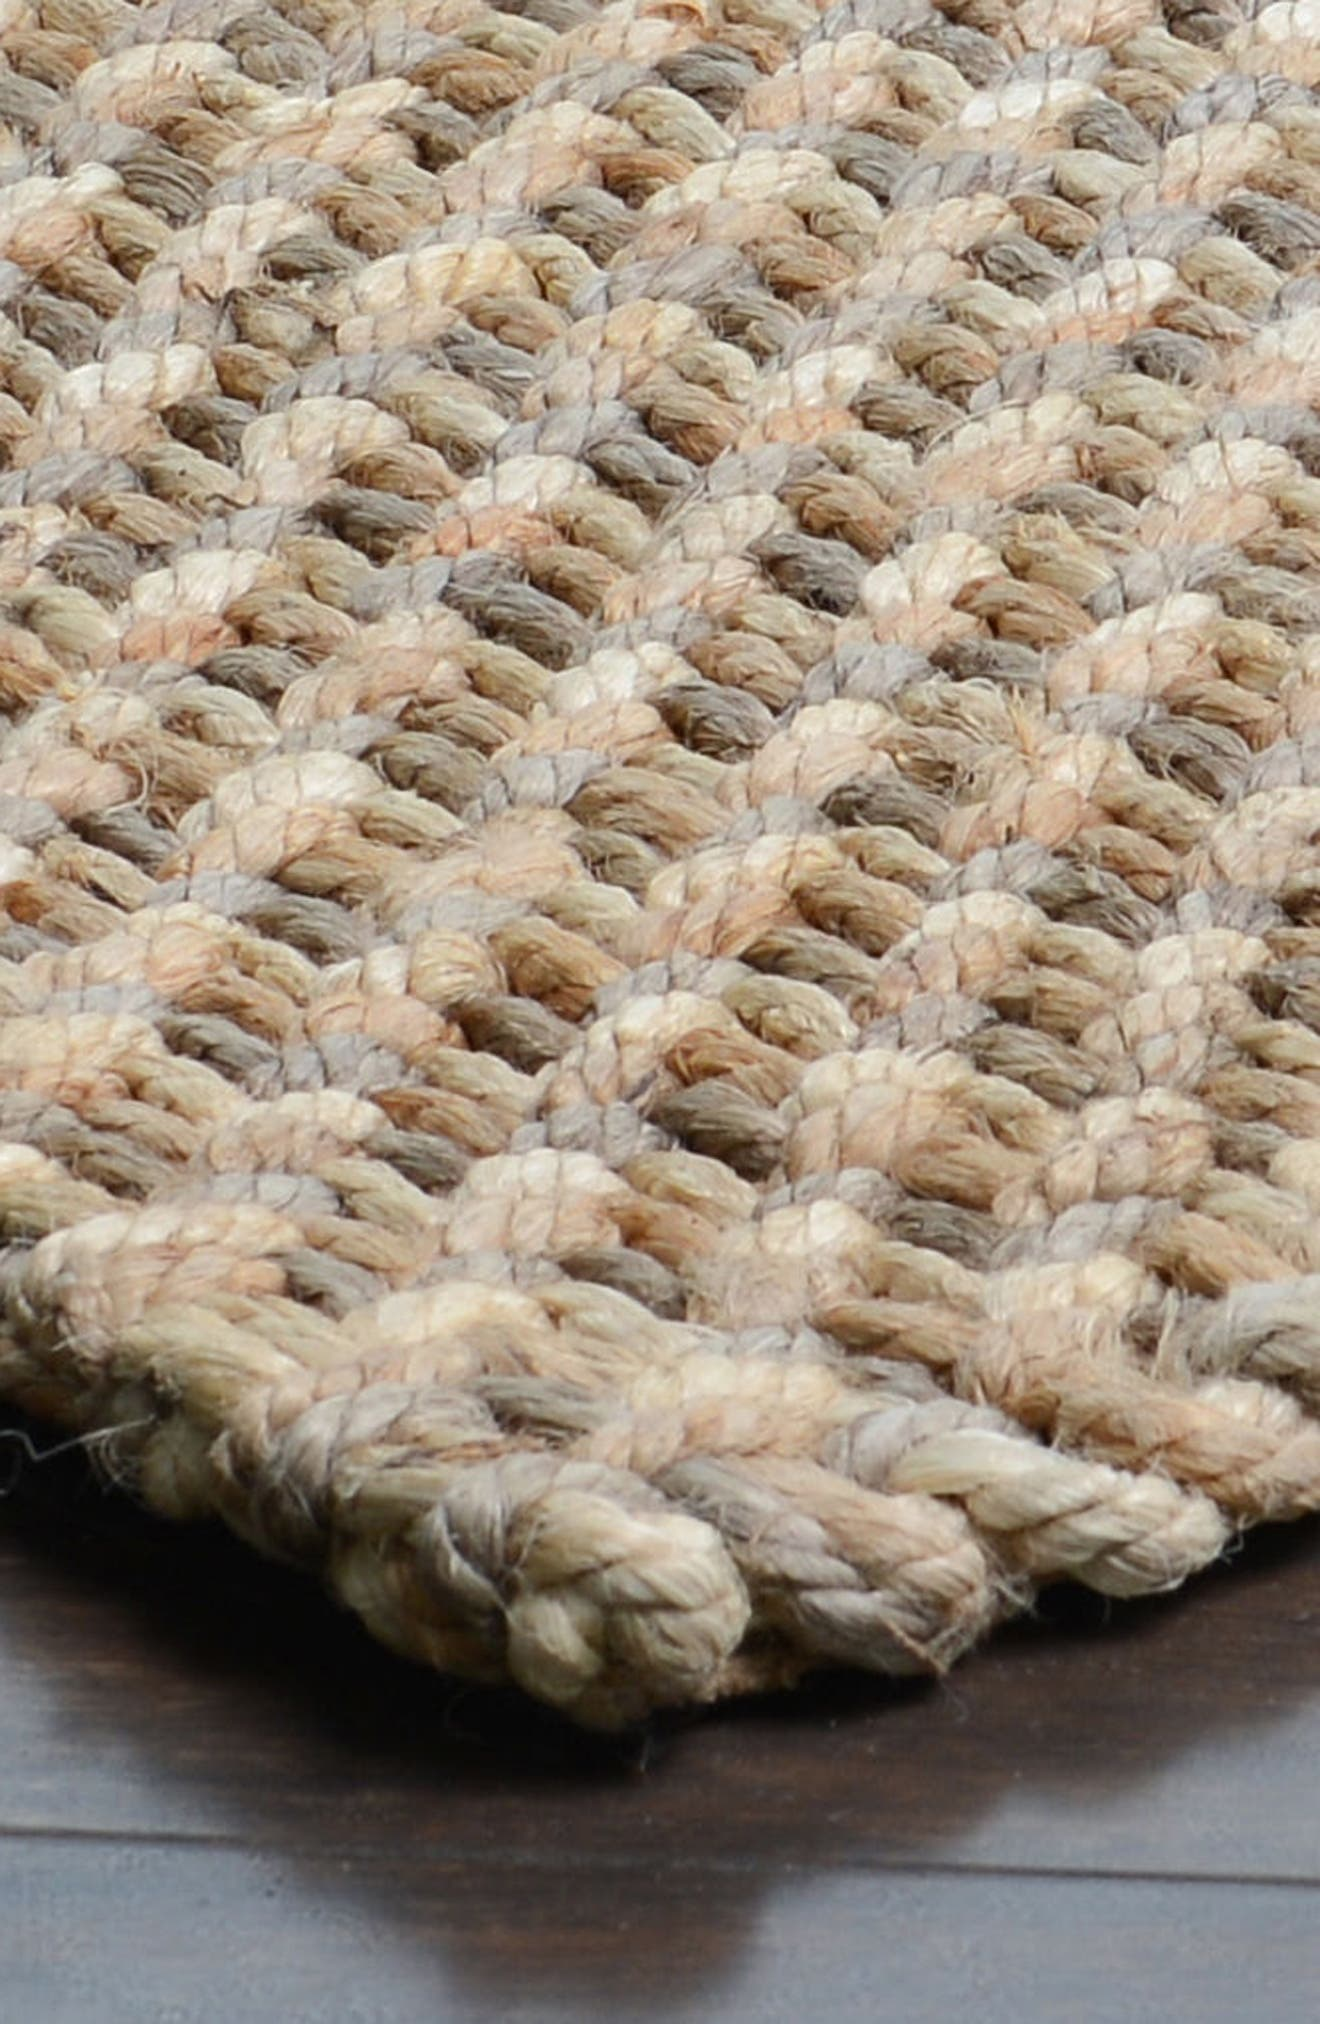 Ladera Handwoven Rug,                             Alternate thumbnail 2, color,                             250